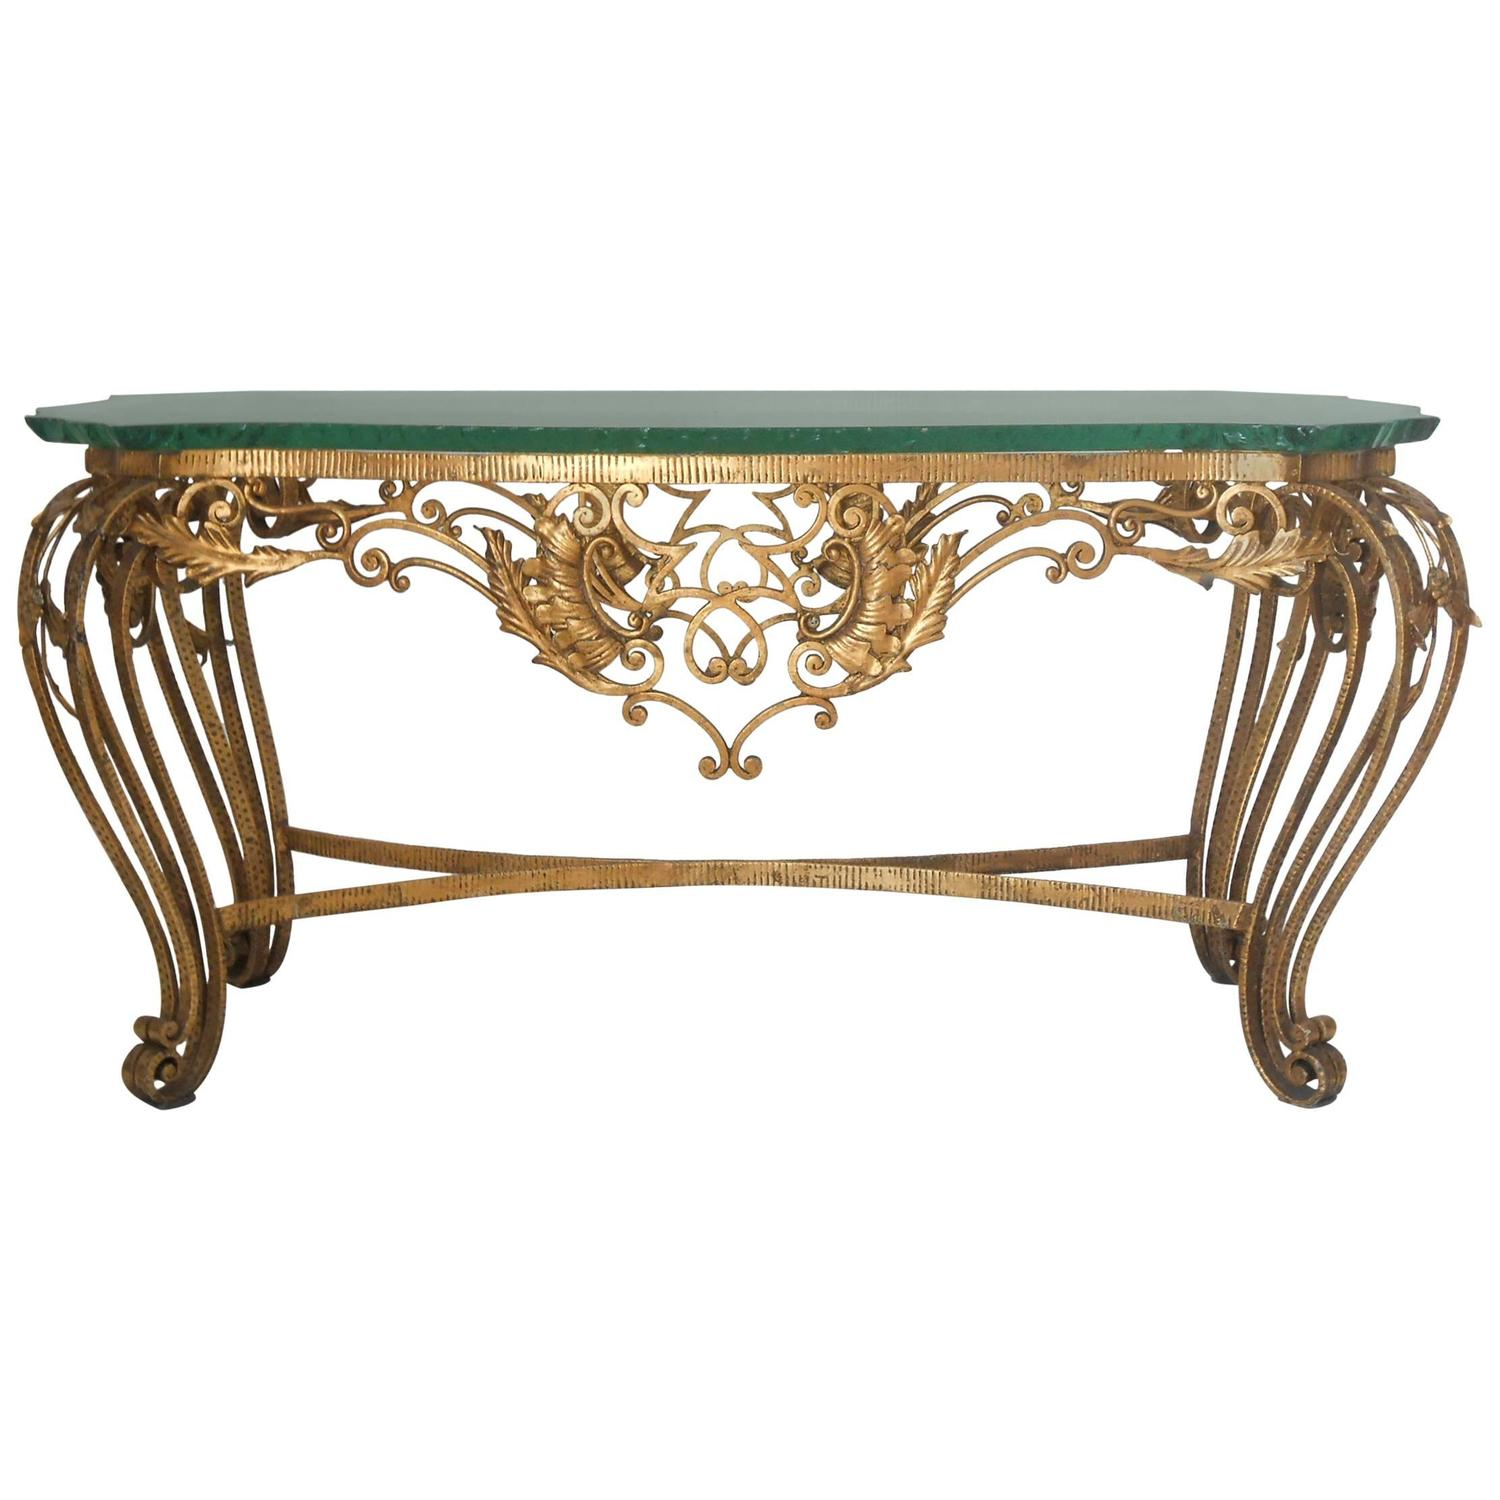 Italian gilt wrought iron coffee table for sale at 1stdibs Wrought iron coffee tables